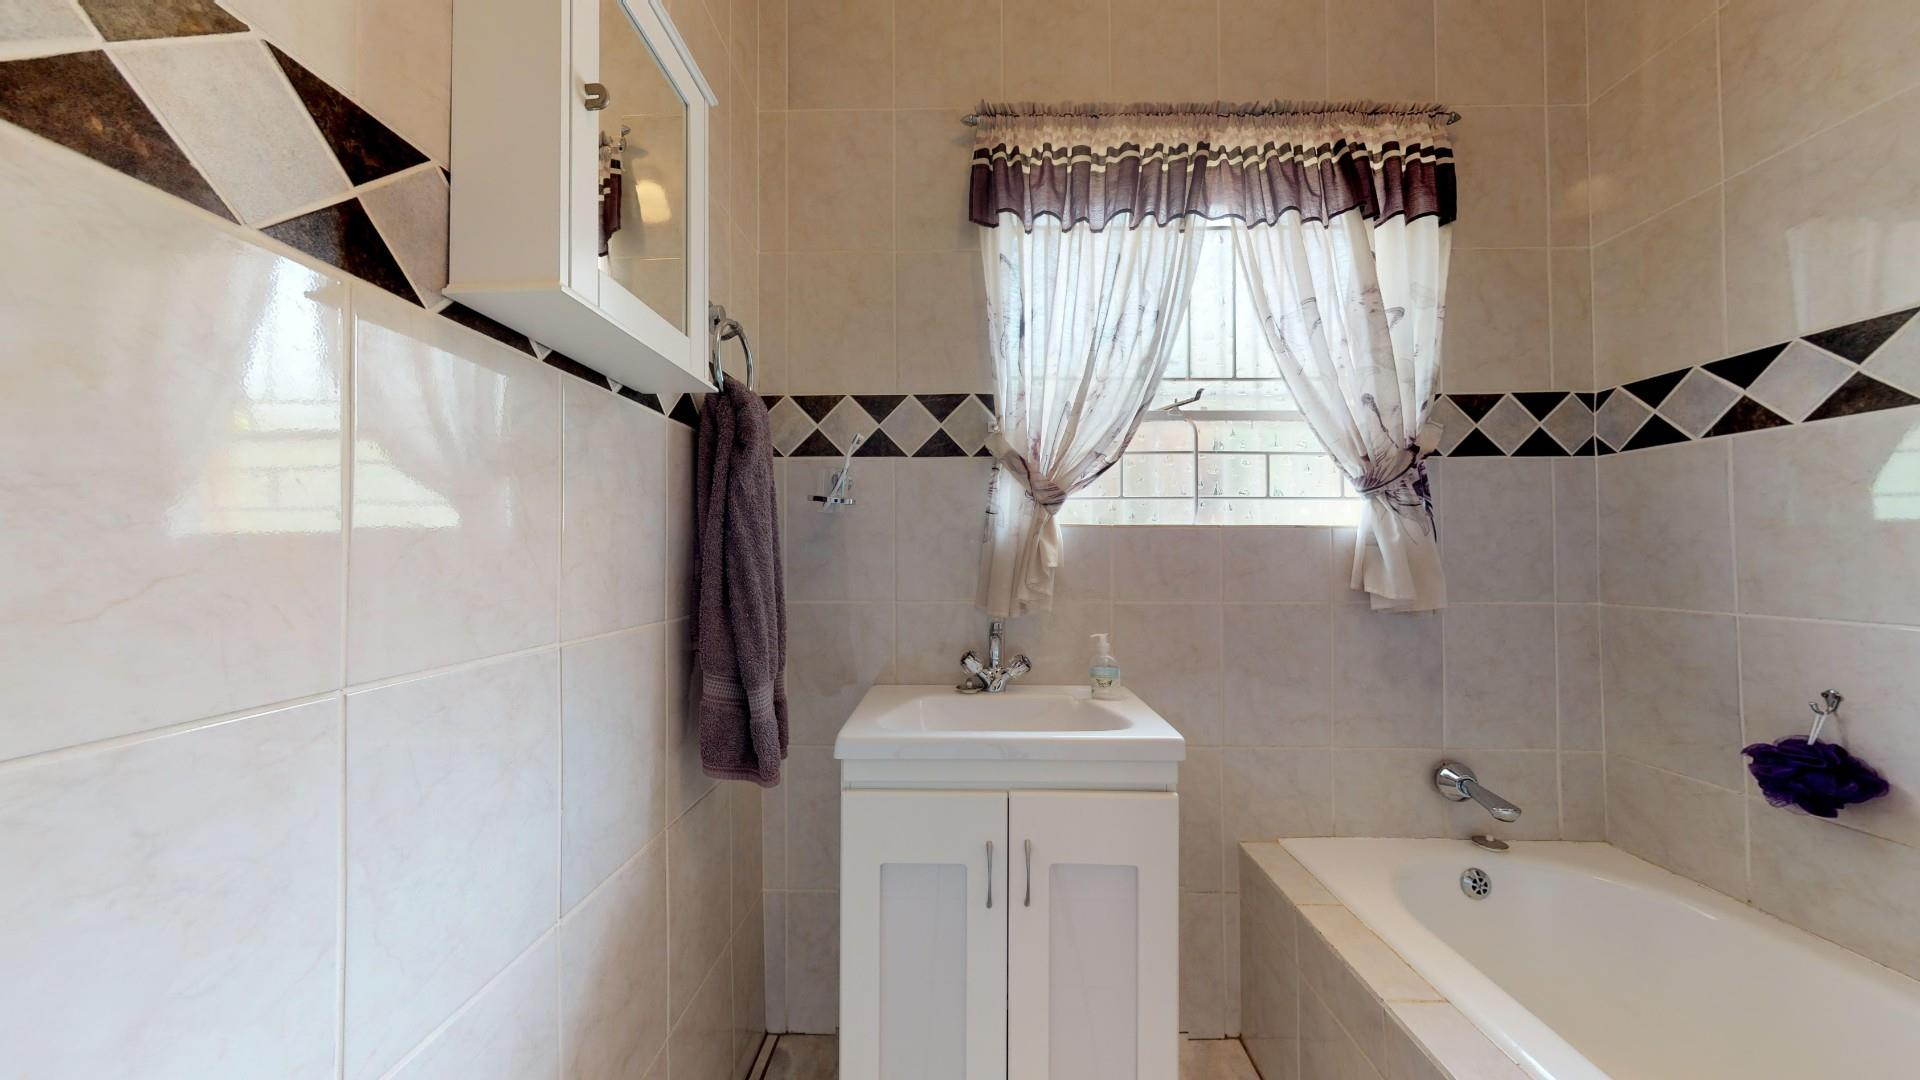 4 Bedroom House For Sale in Kenmare